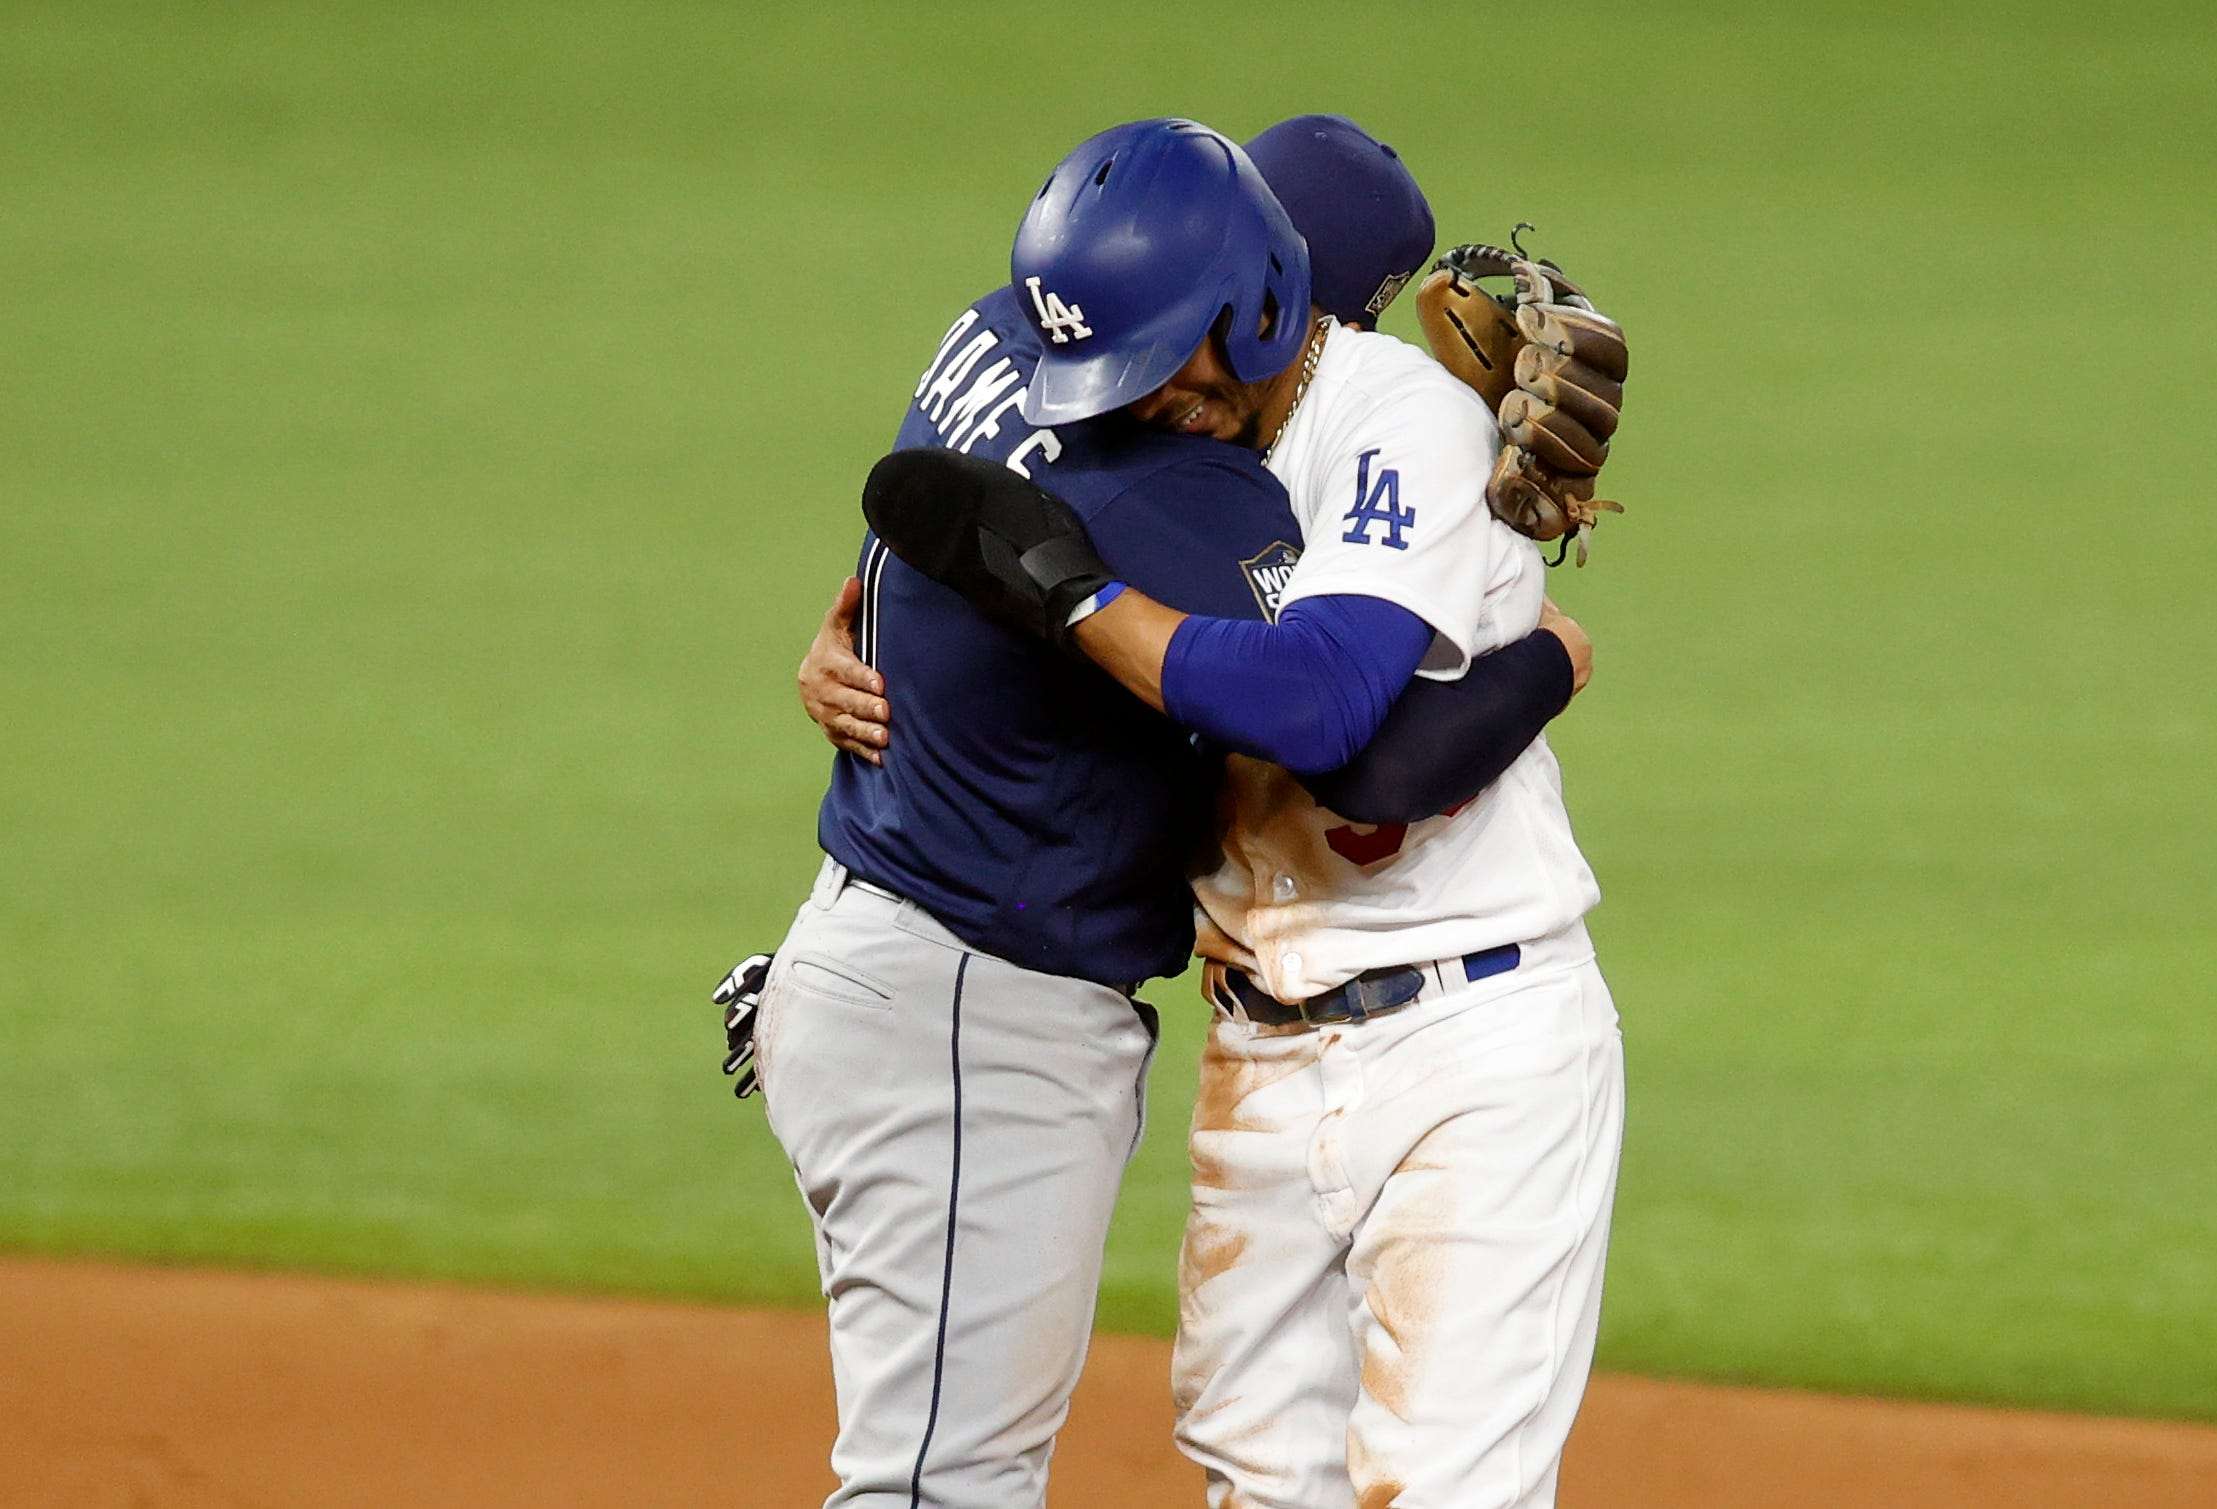 Free tacos! Dodgers' Mookie Betts (again) wins everyone Taco Bell with World Series stolen base